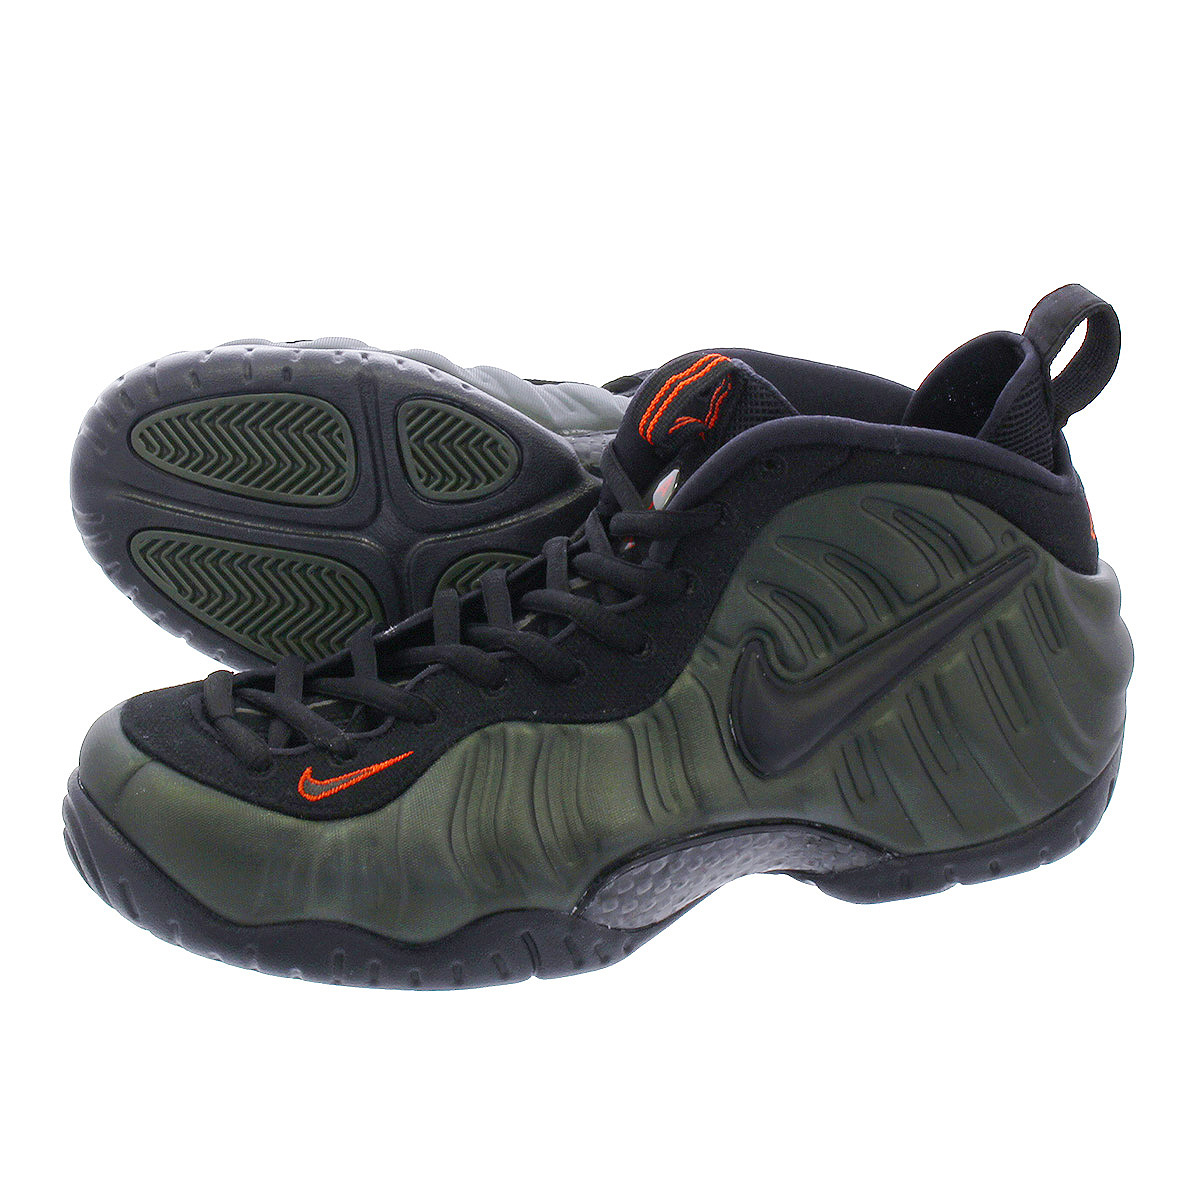 478b7422f87 ... hot nike air foamposite pro sequoia black team orange 624041 304 50bd7  92ae8